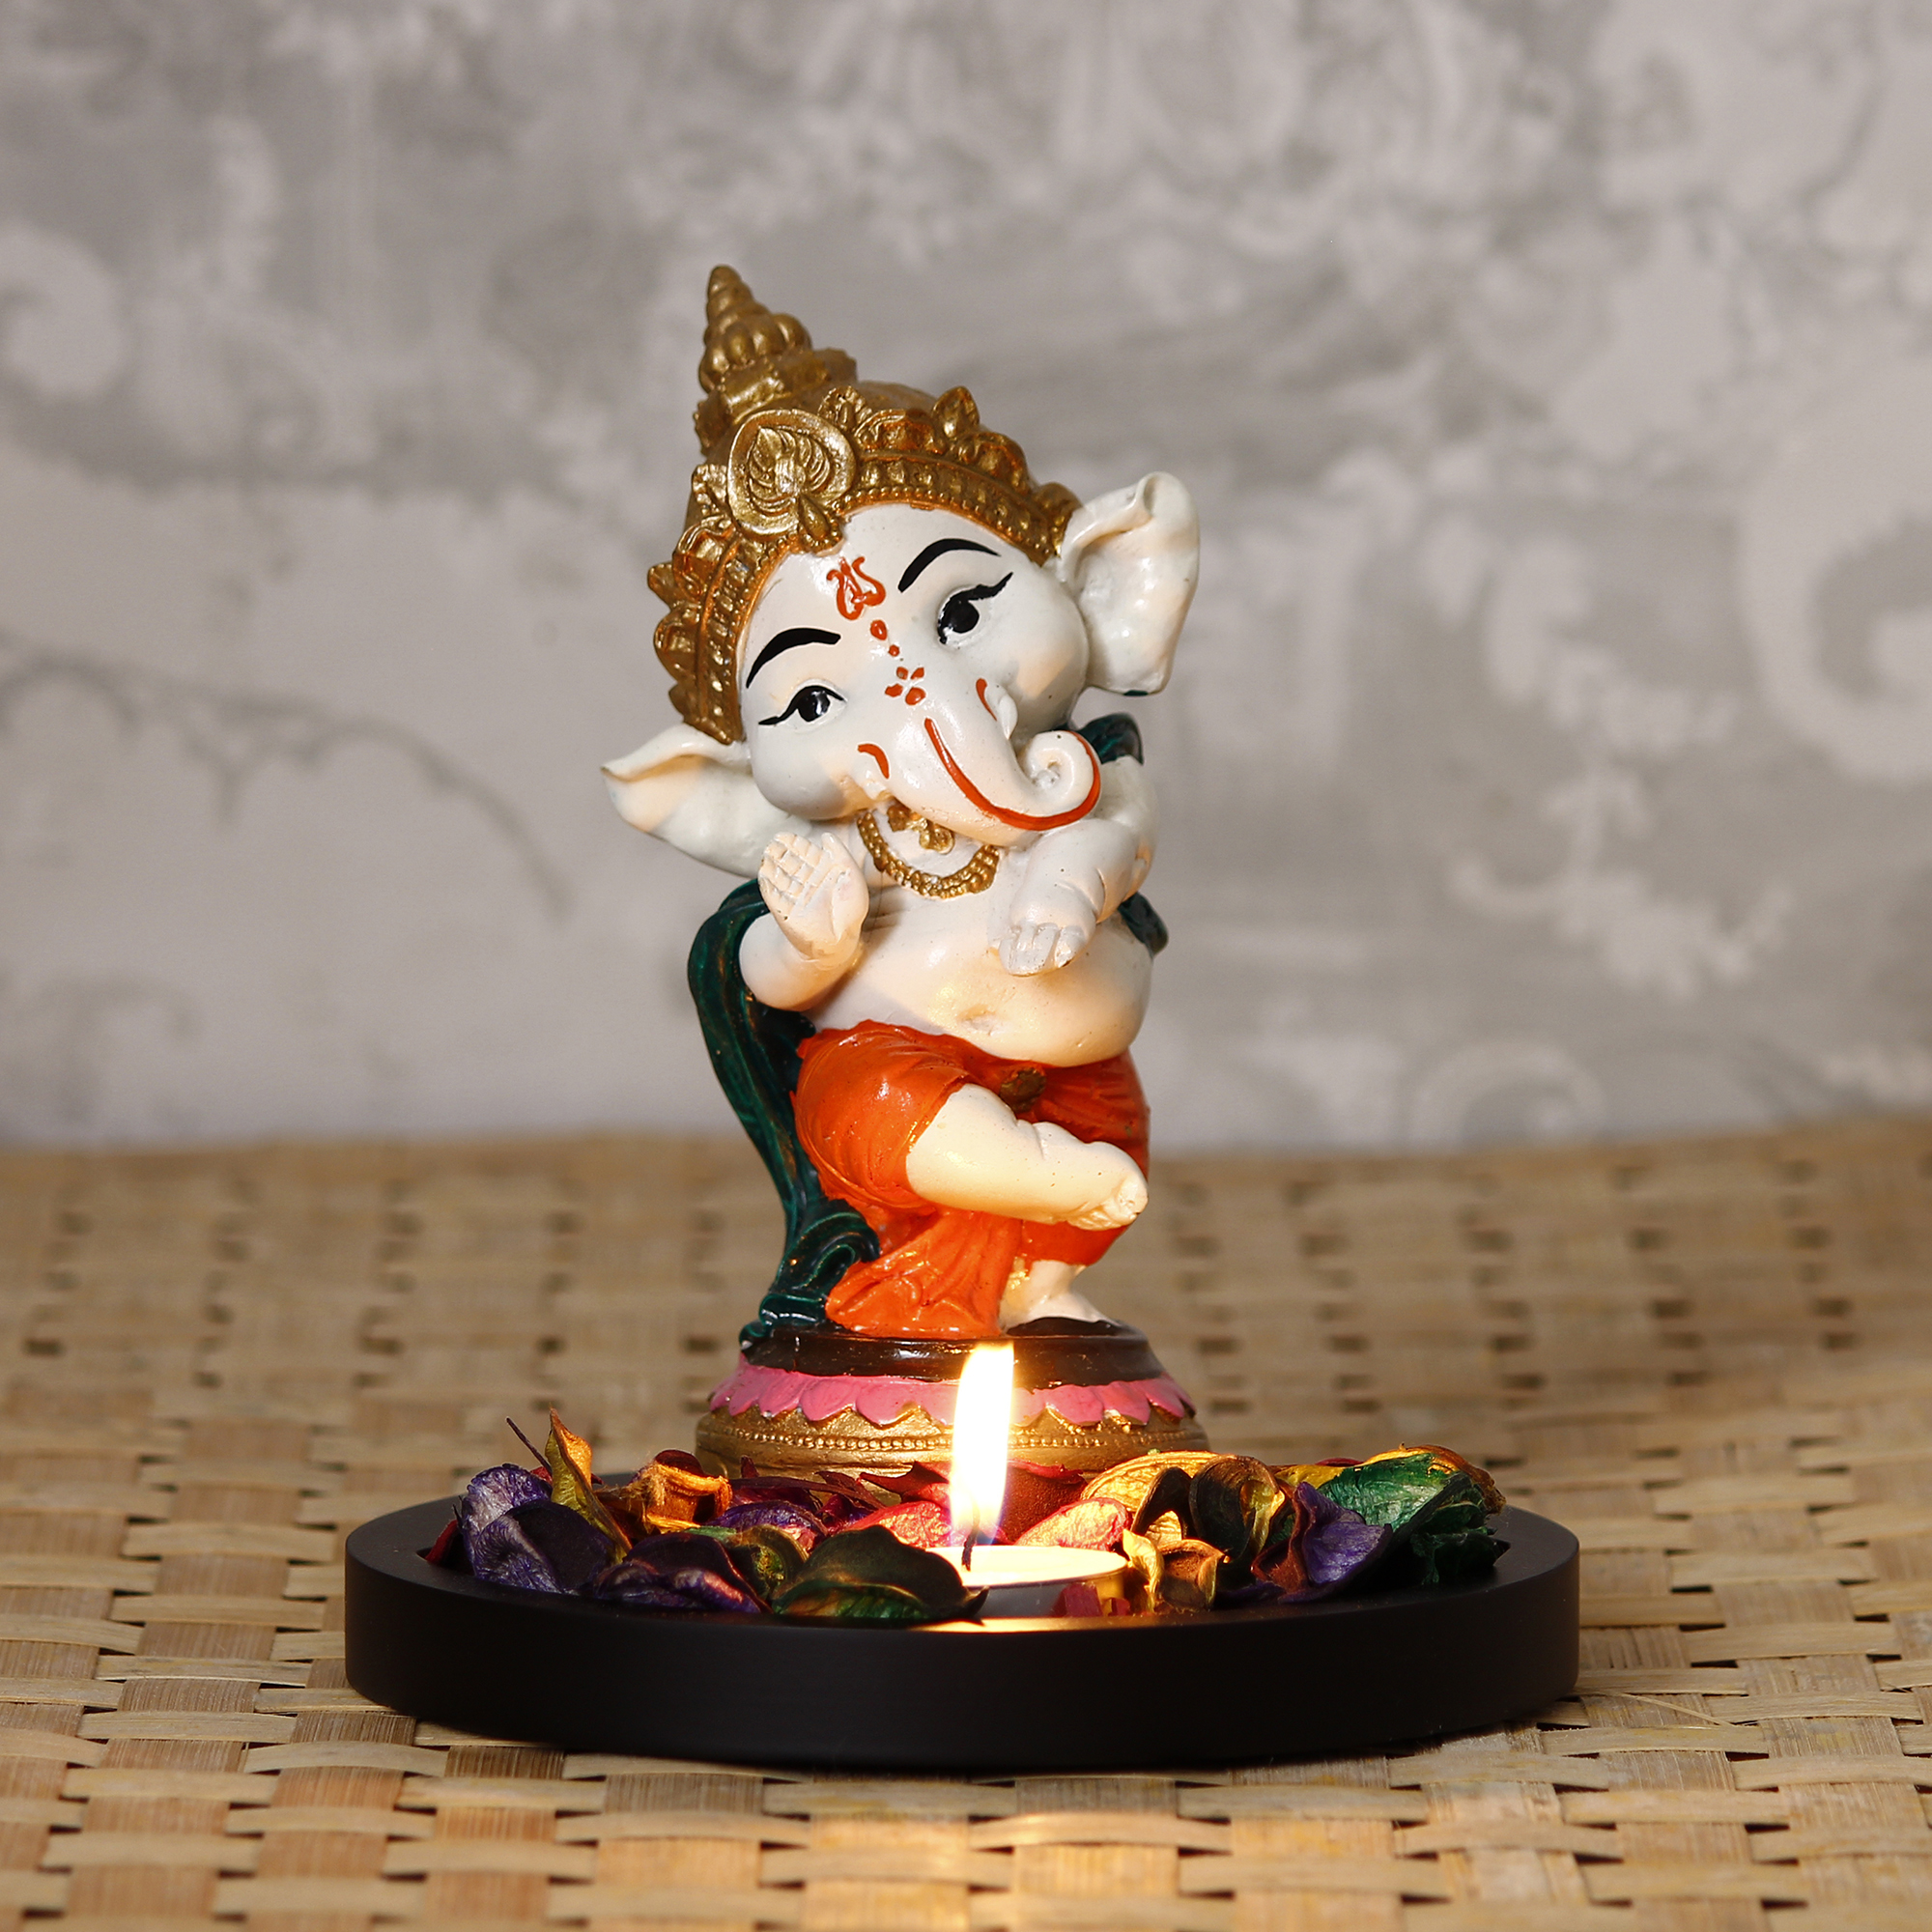 Colorful Lord Ganesha Dancing Avatar Decorative Showpiece with Wooden Base, Fragranced Petals and Tealight Indian Home Decor